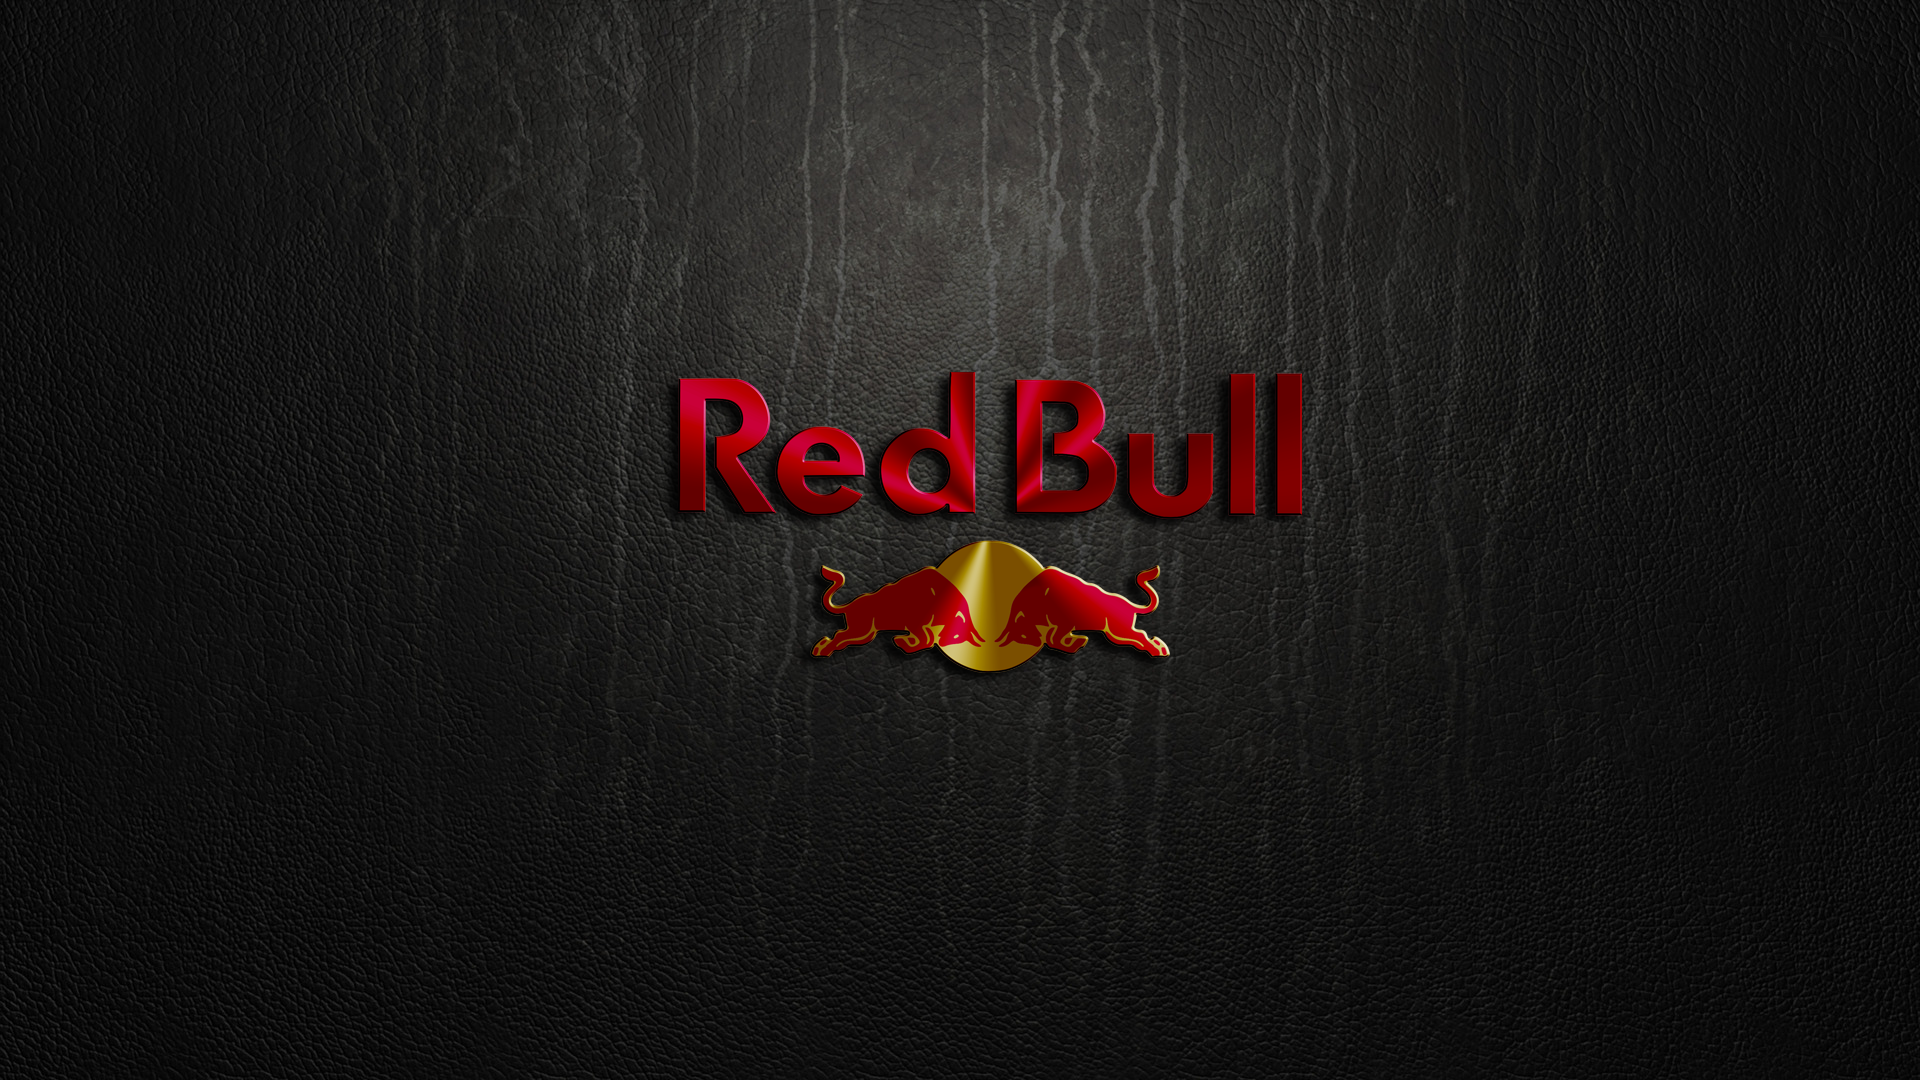 Amazing 38775067 Red Bull Wallpapers | 1920x1080 px